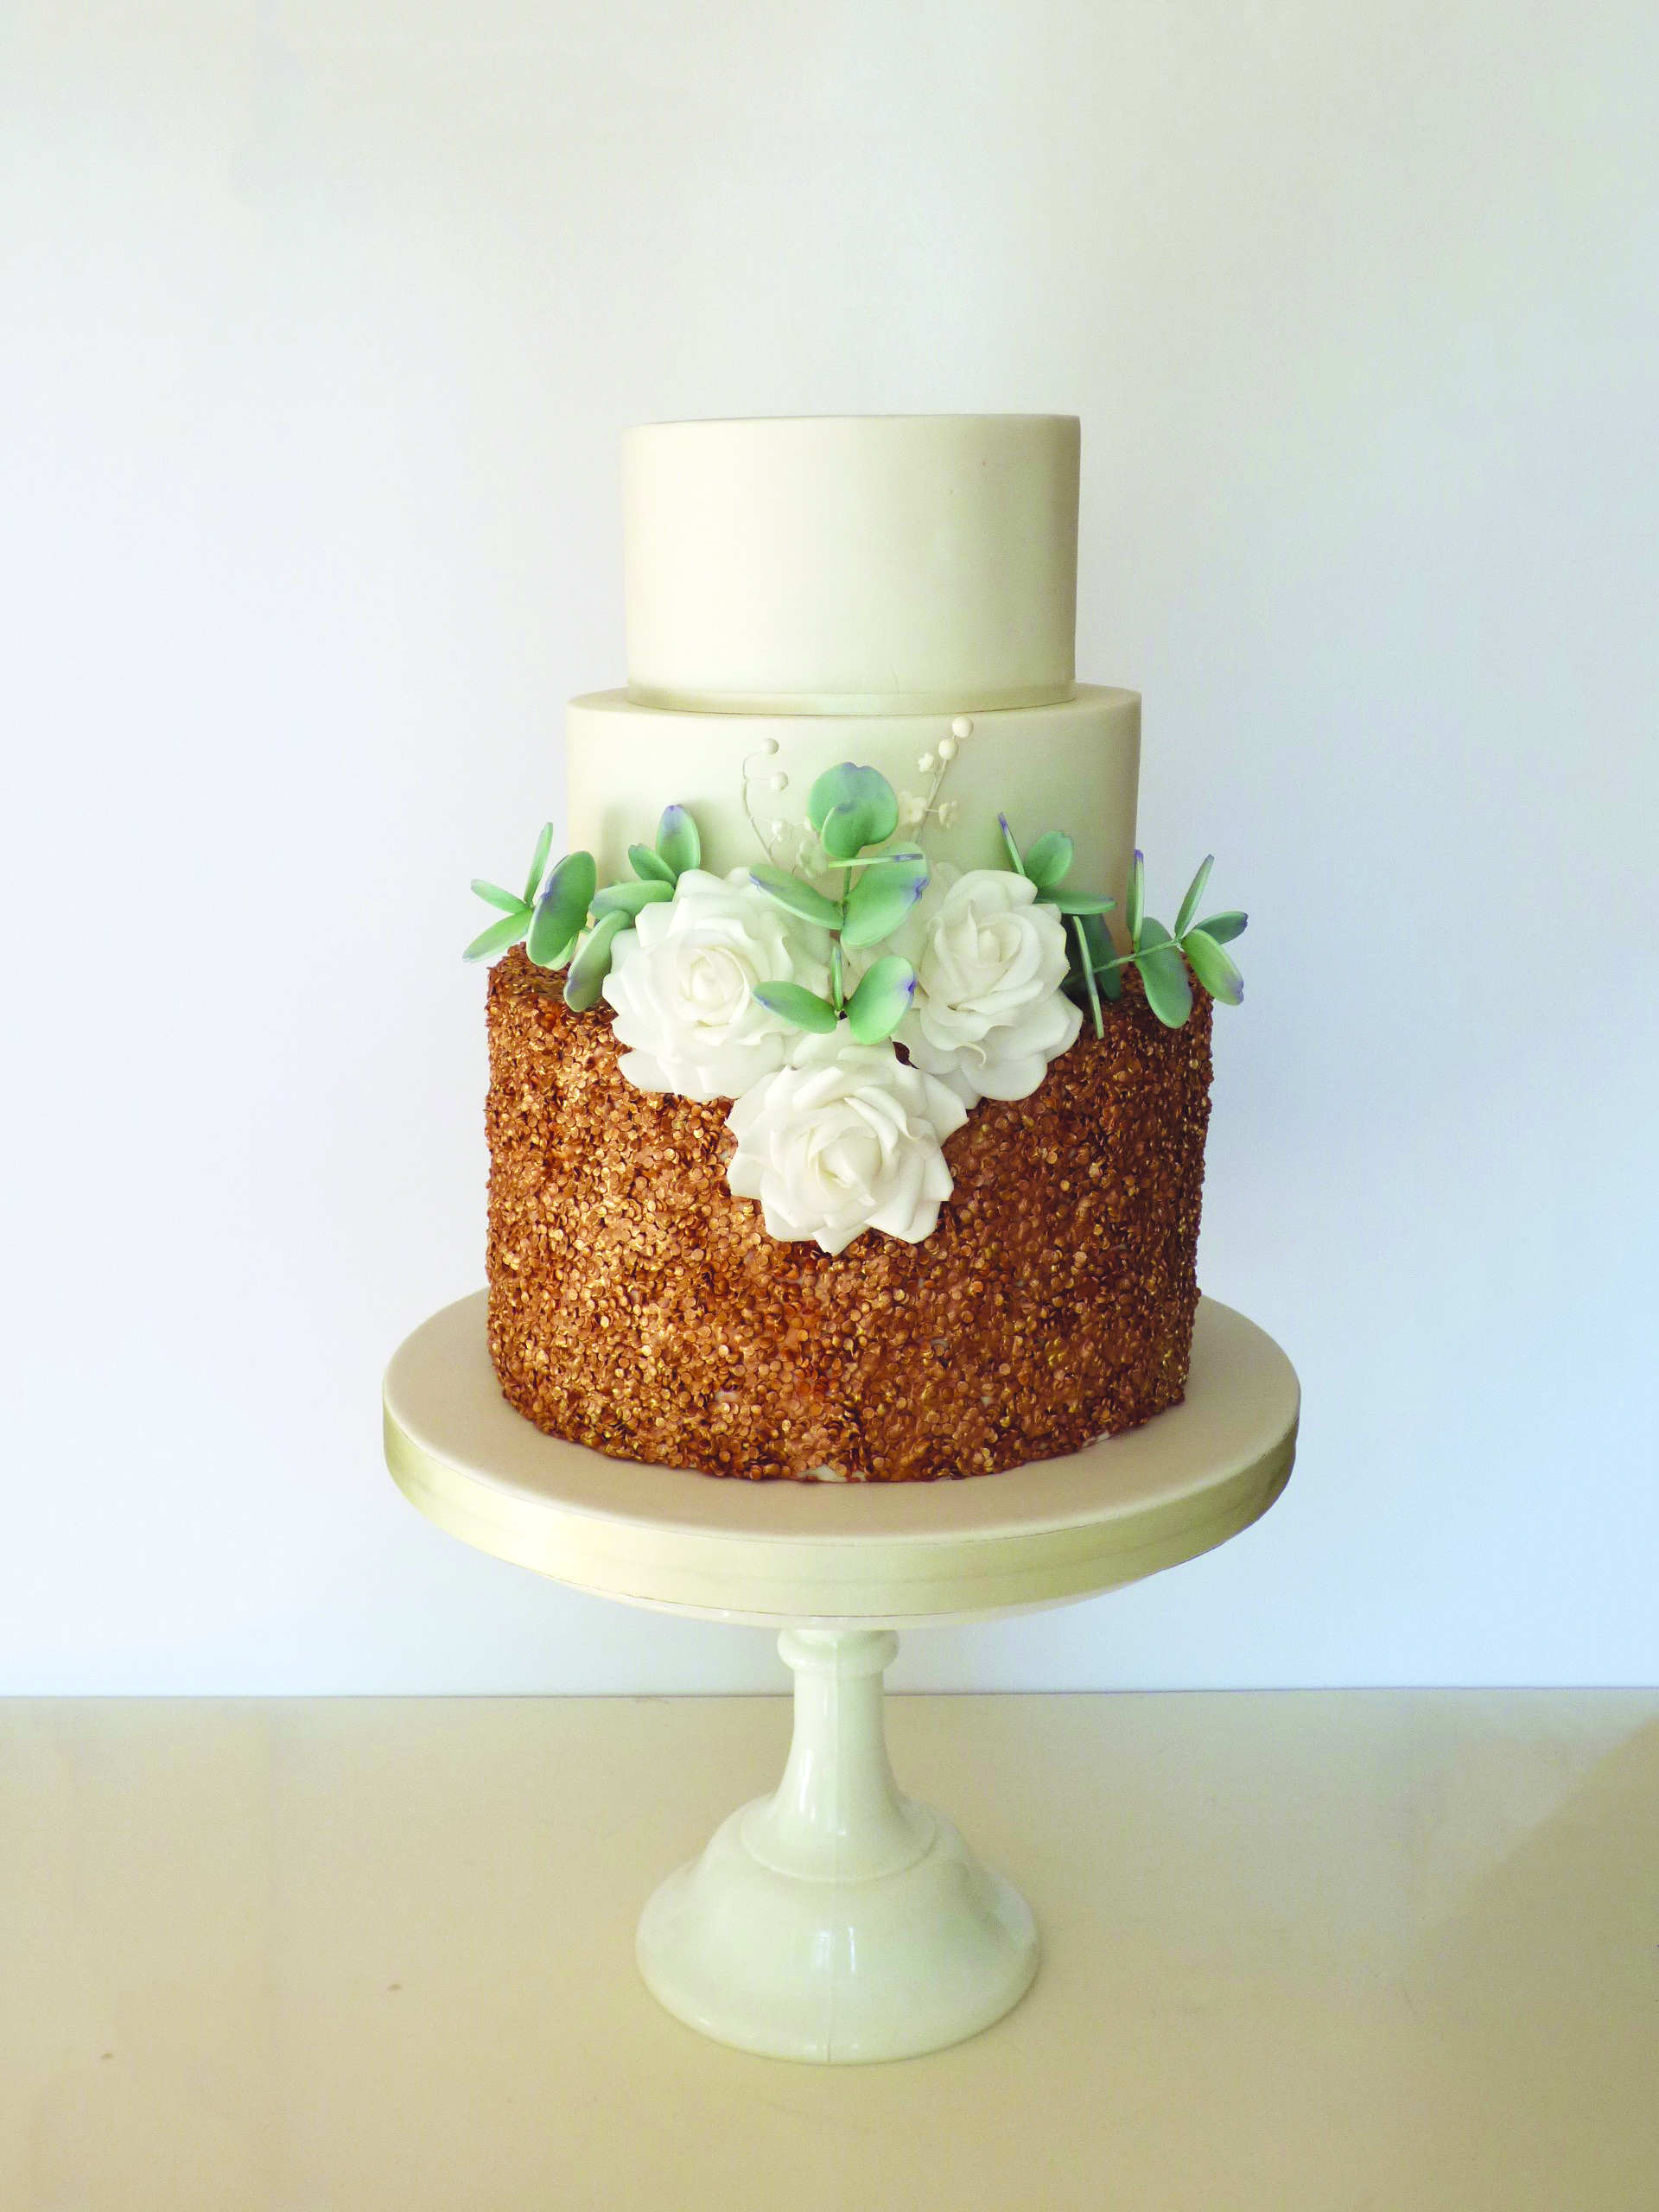 Sequins and sugar flowers on this beautiful wedding cake at Pembroke Lodge in Richmond Park, London